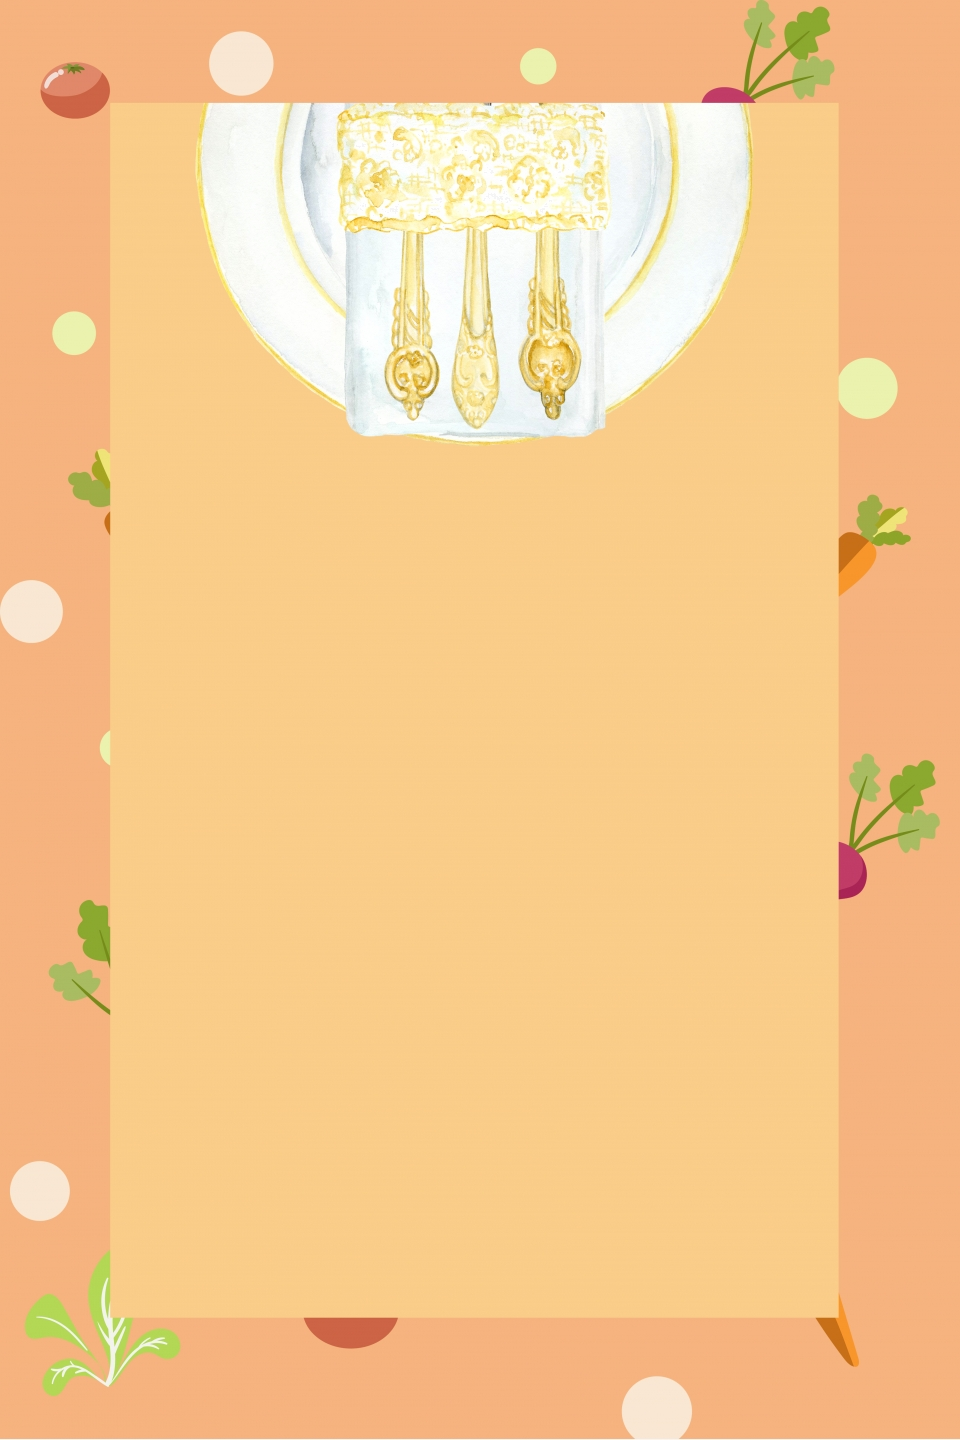 Restaurant Menu Background Material, Ordering And Folding Small